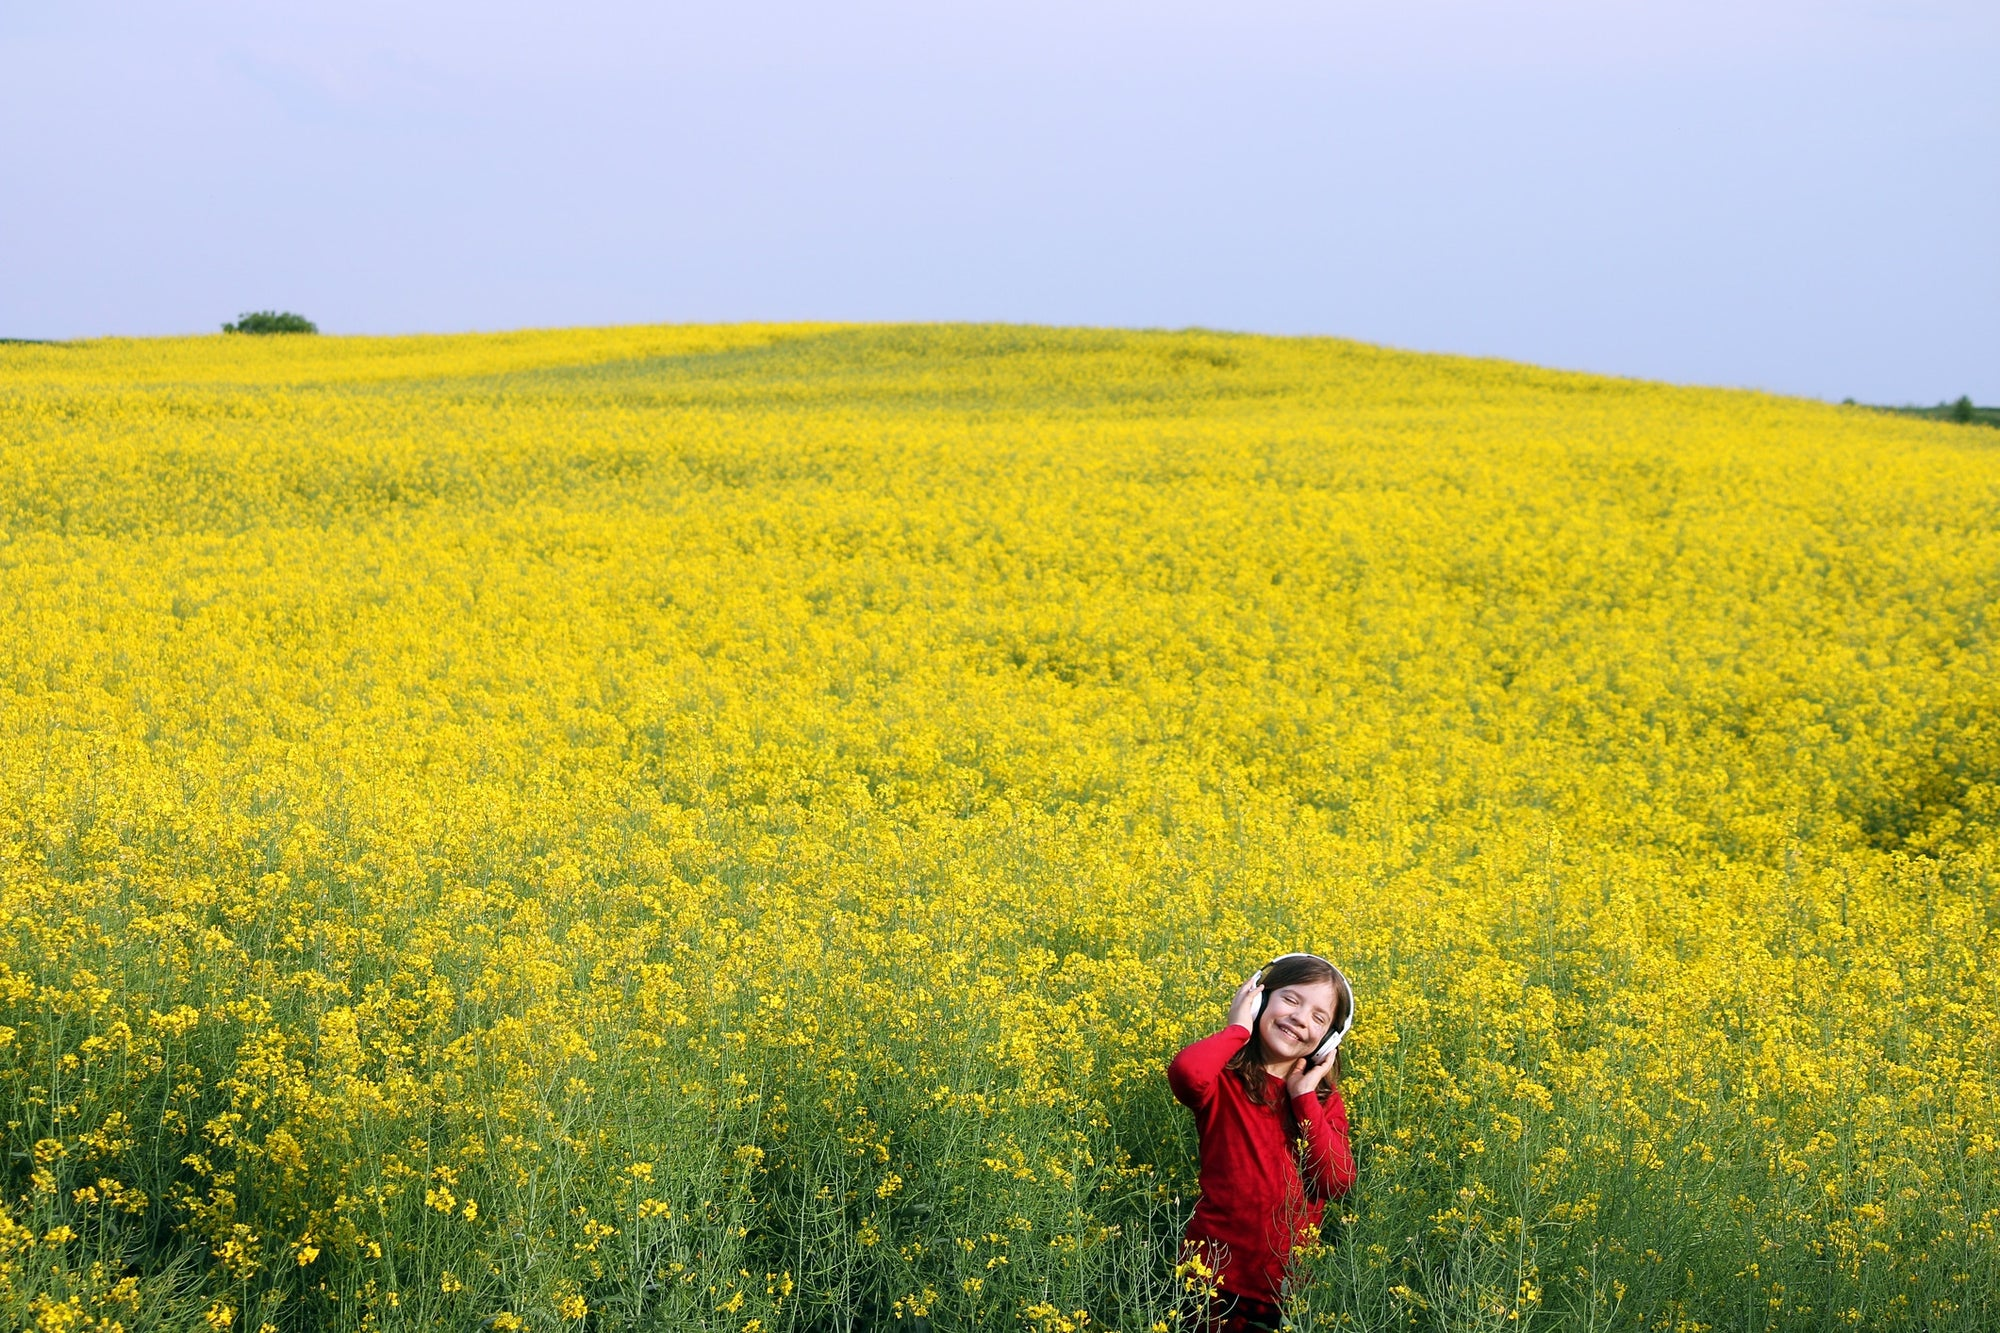 girl on yellow flower background listening to music